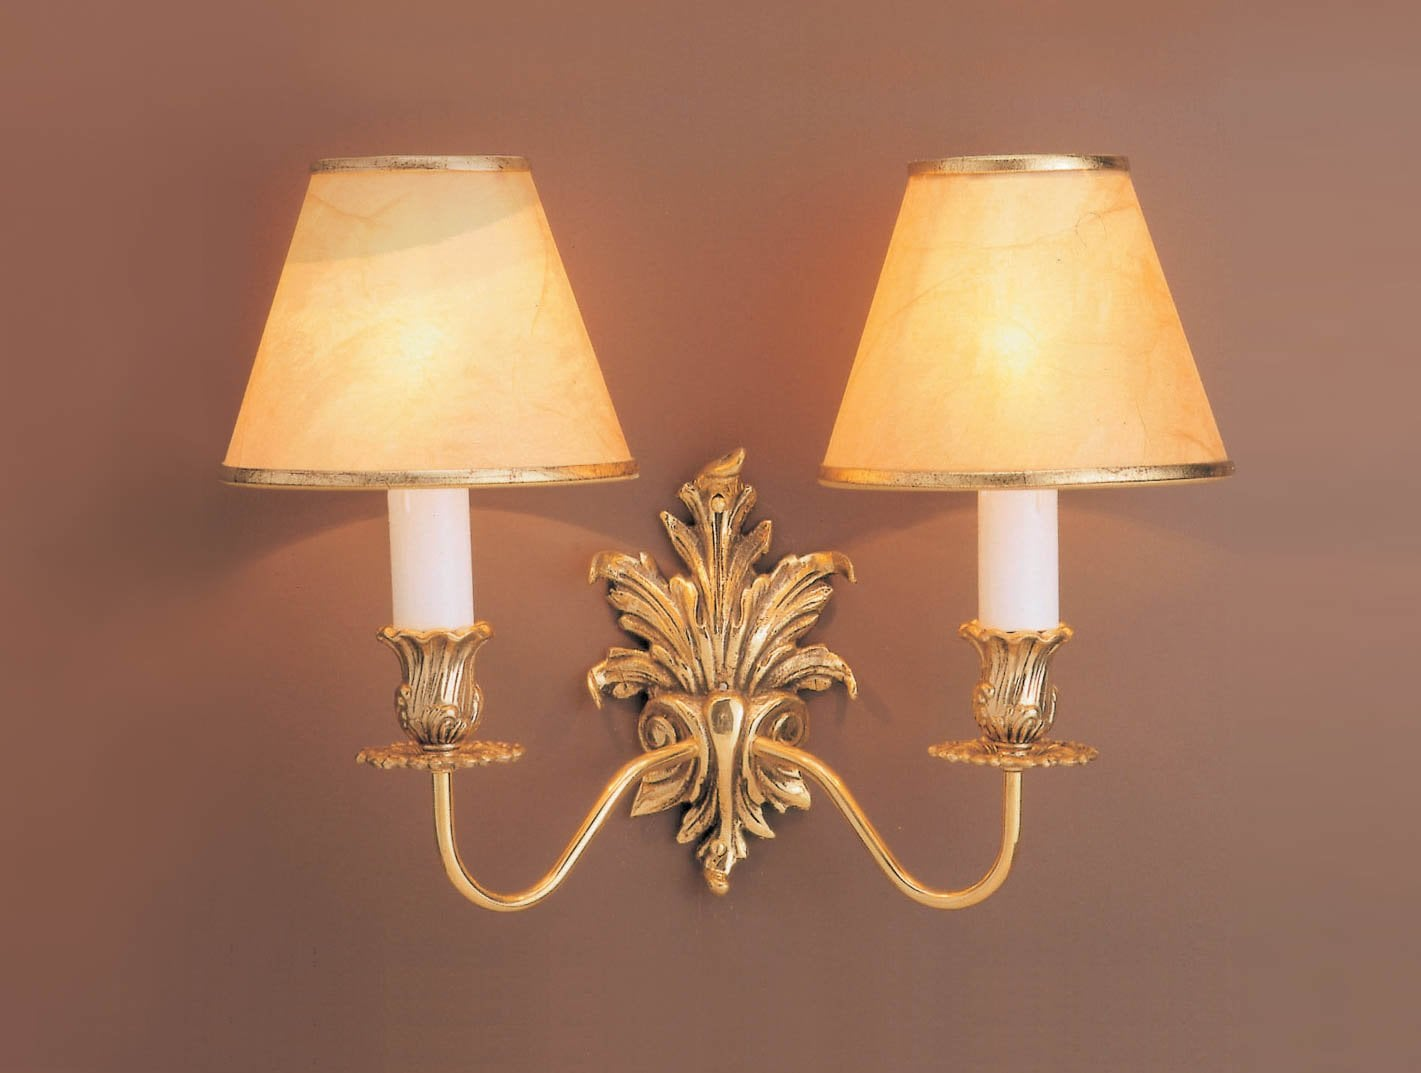 Impex SMBB00182/PB Dauphine 2 light Wall Light, Polished Brass fitting only